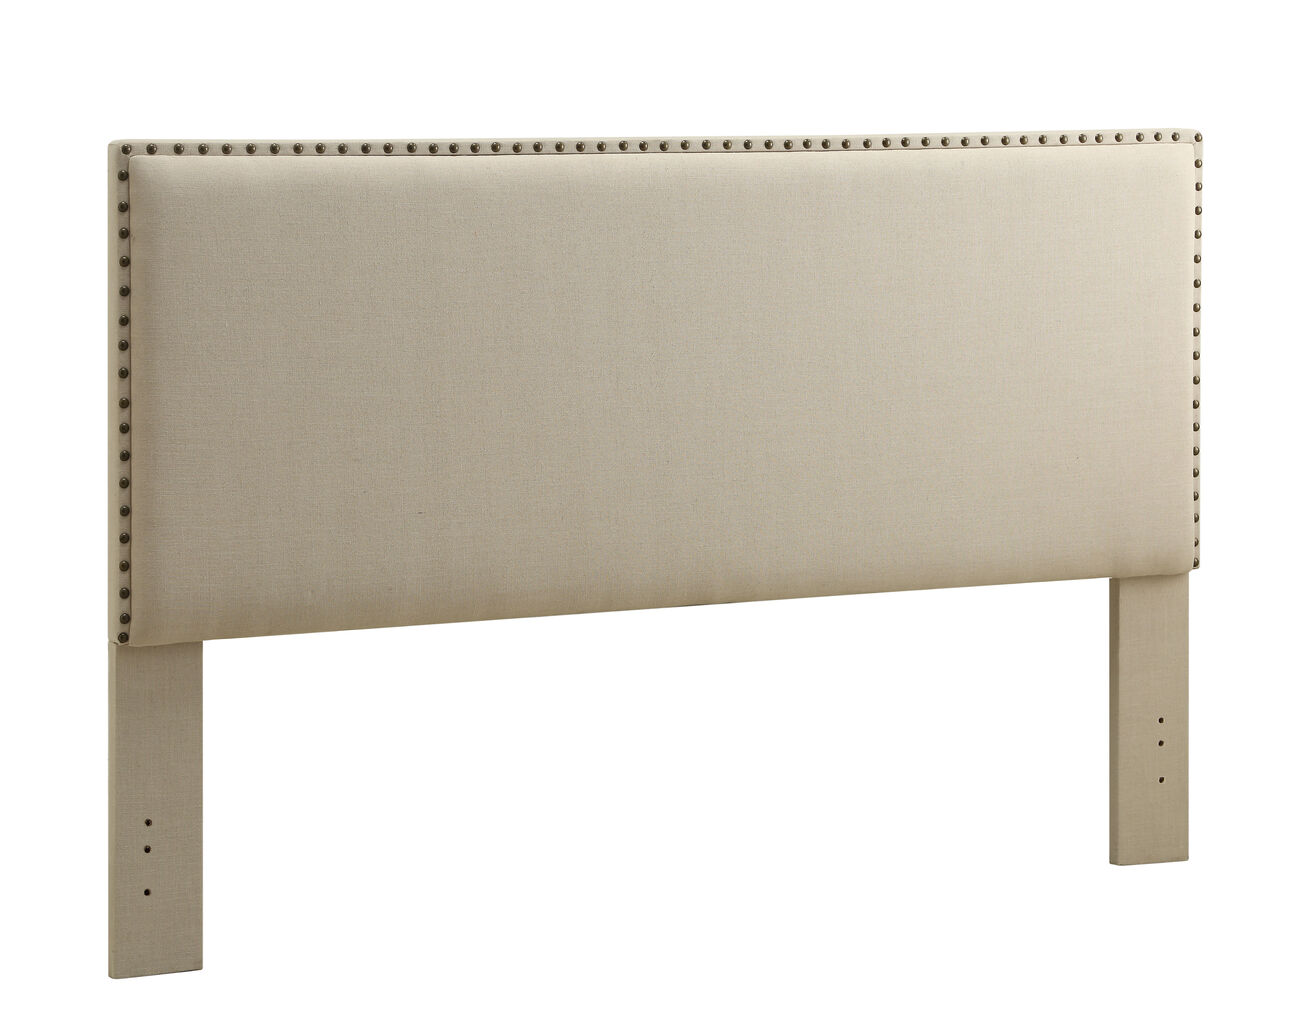 Fabric Upholstered King Size Headboard with Nailhead Trims, Beige